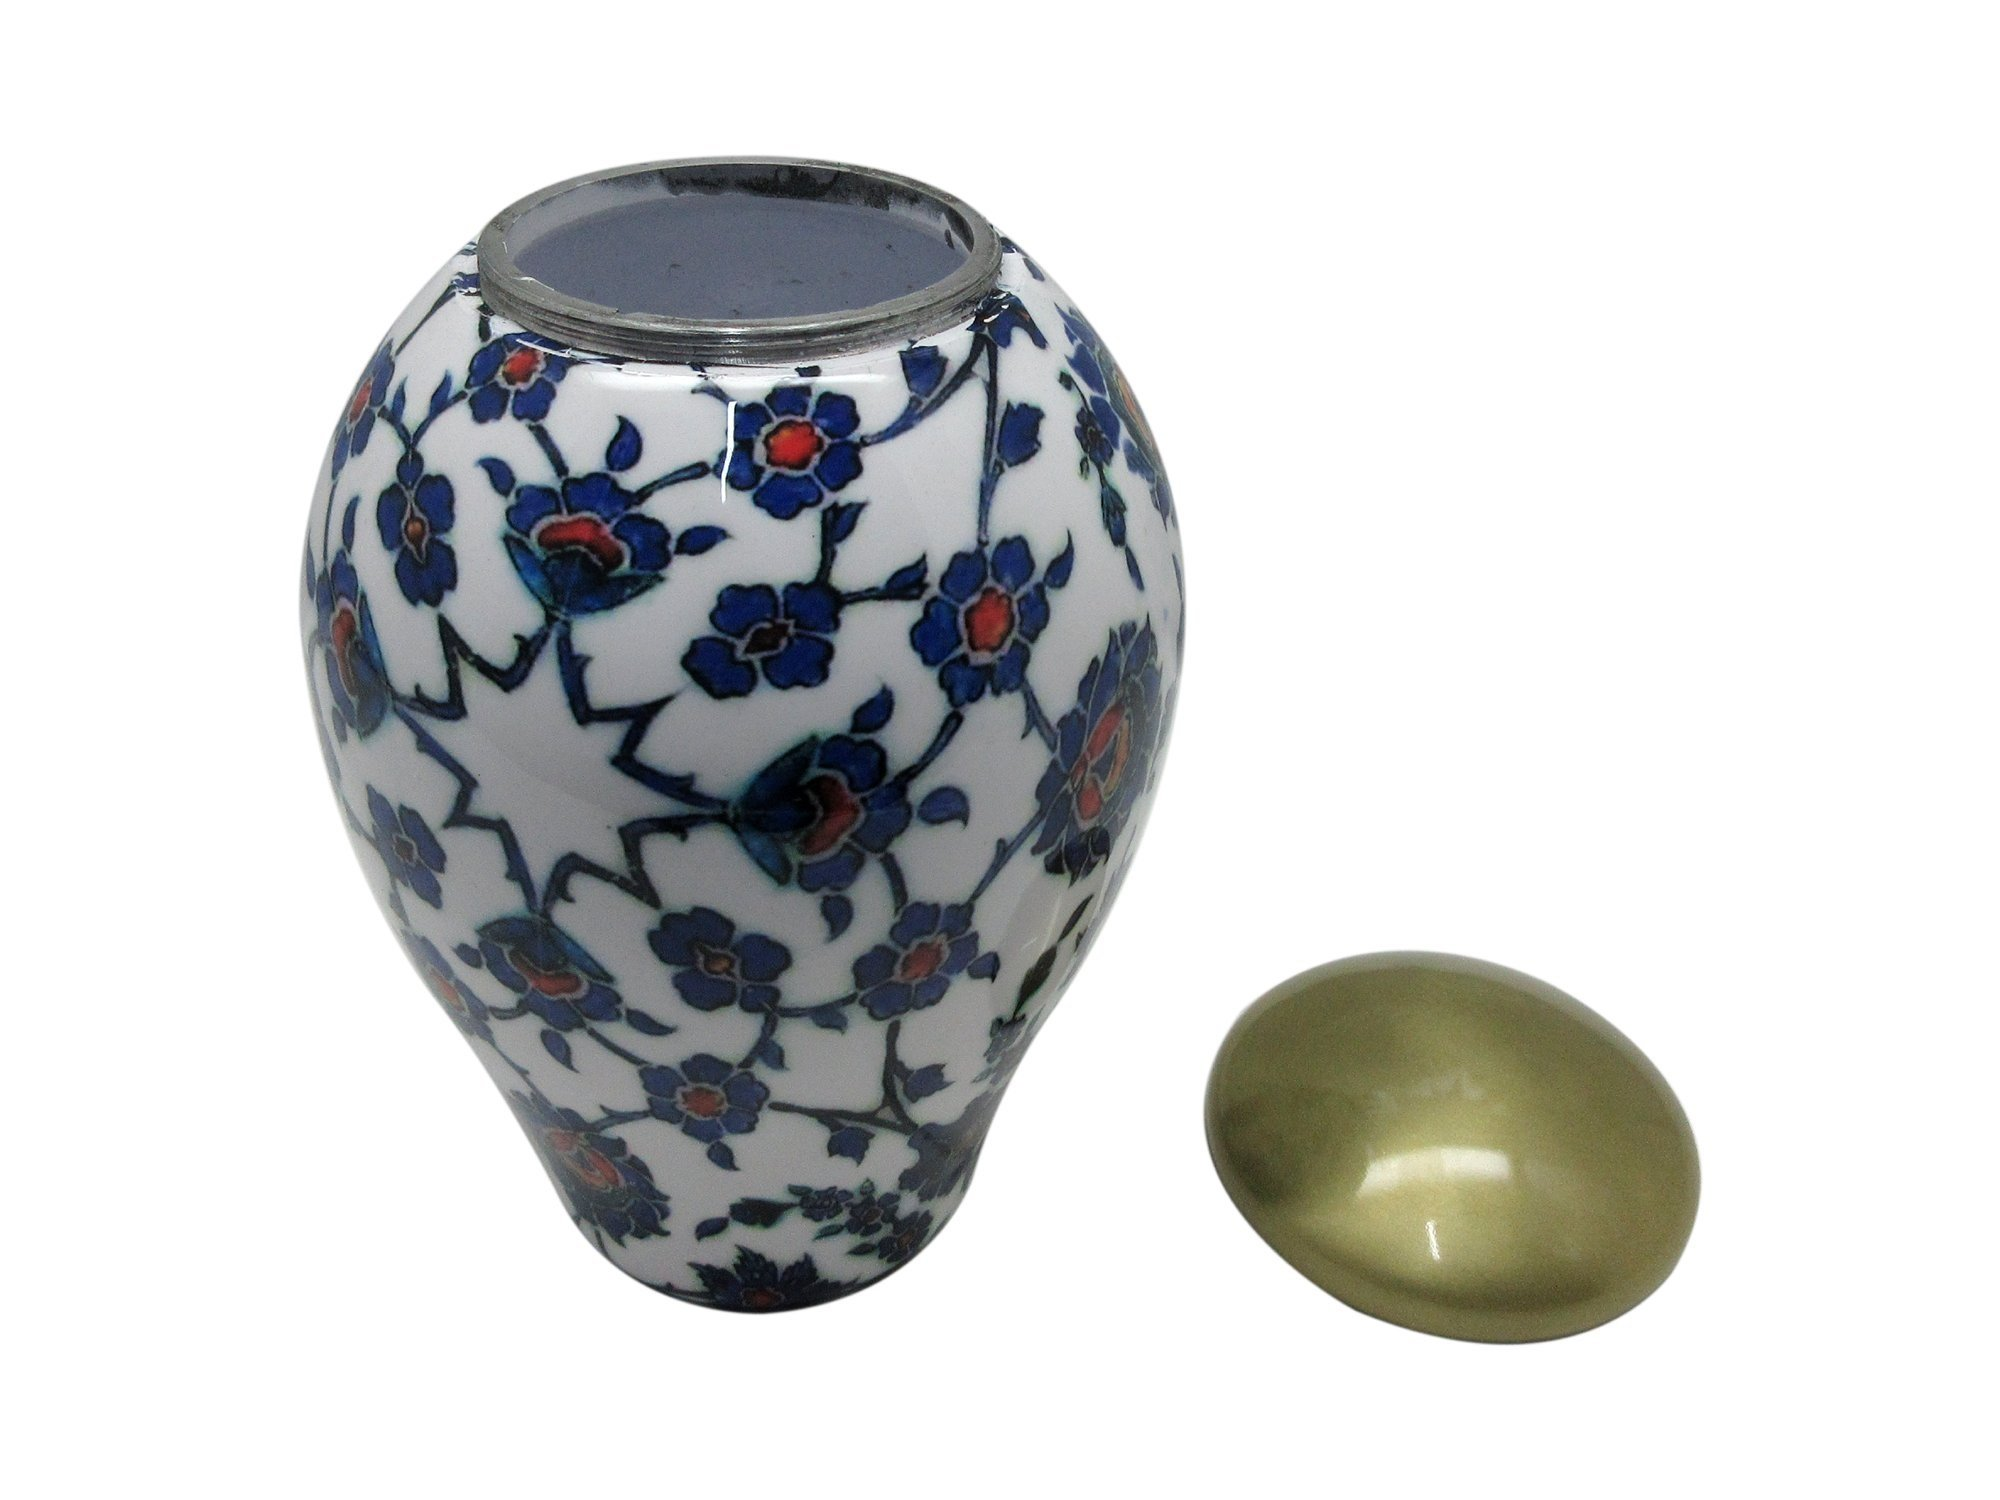 Customized Blue Floral Enamel Cremation Urn, Memorial Adult Human Urn with Personalization and bag